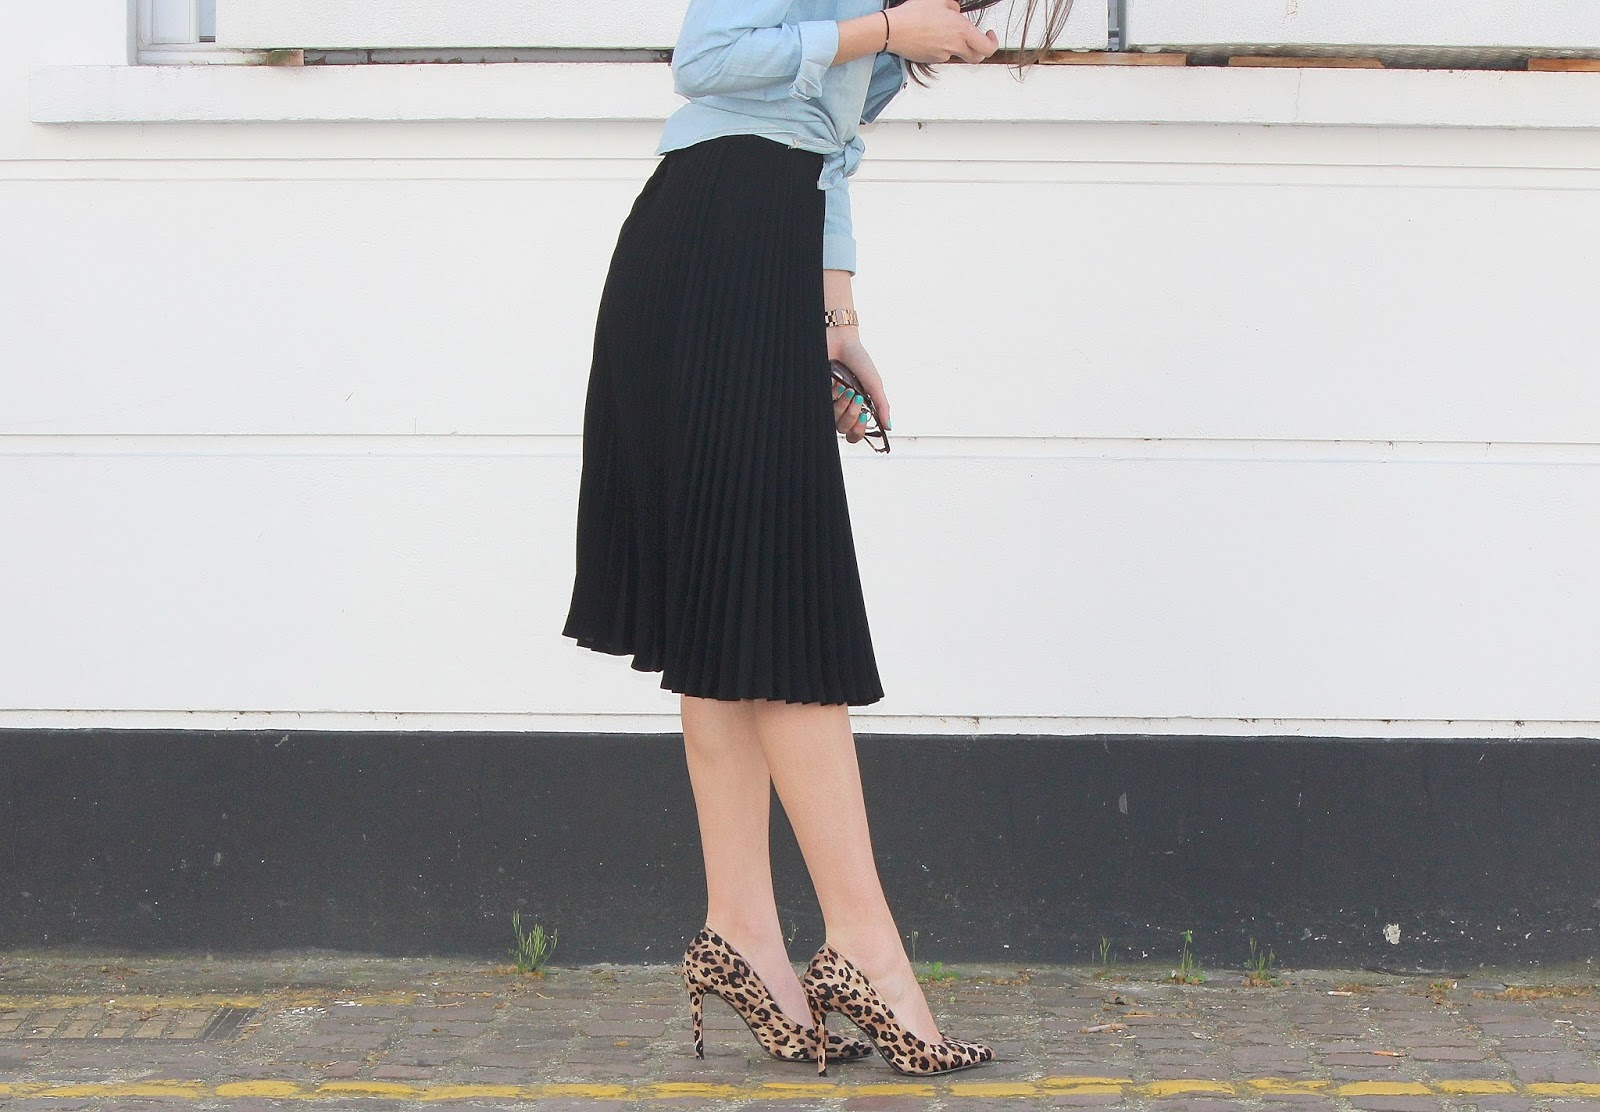 peexo fashion blogger wearing pleated midi skirt with lace bralet and denim shirt and leopard print heels in spring